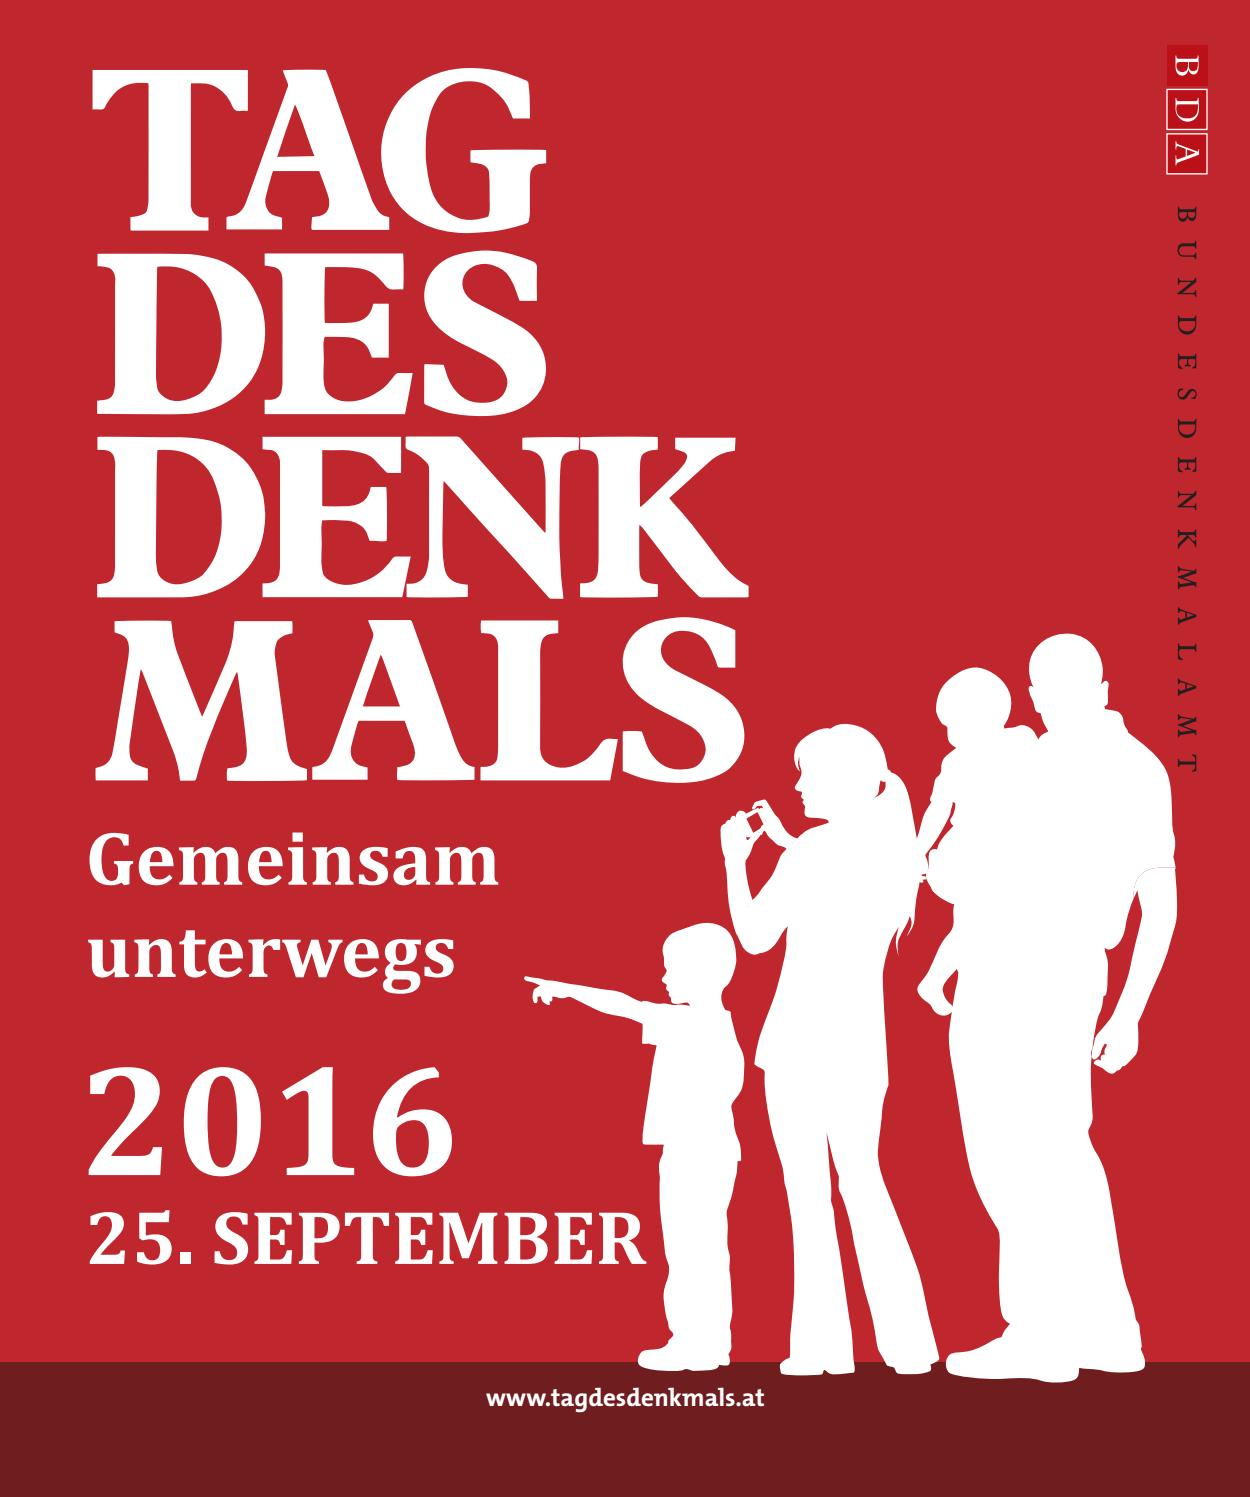 Tag-des-Denkmals by Russmedia Digital GmbH - issuu